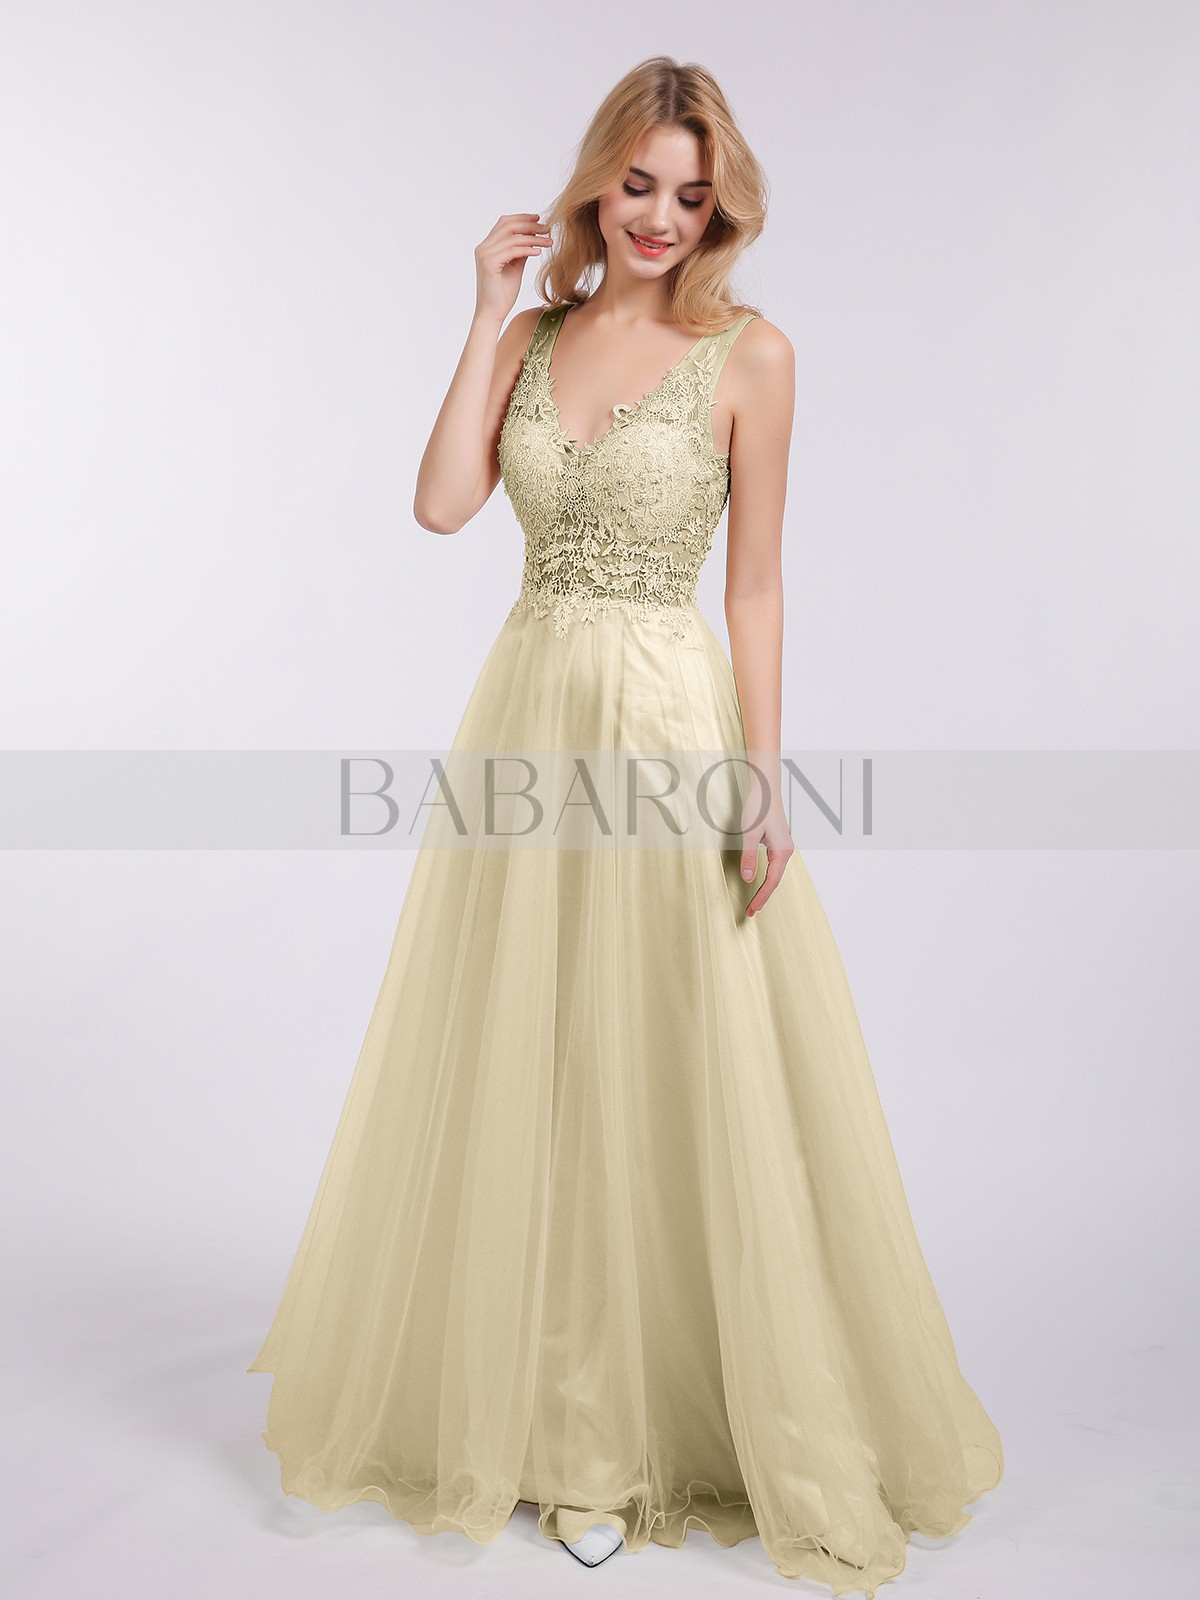 26f1d9aba872 A-line Tulle Champagne Backless Floor-length V-neck Sleeveless New  Arrivals. Loading zoom